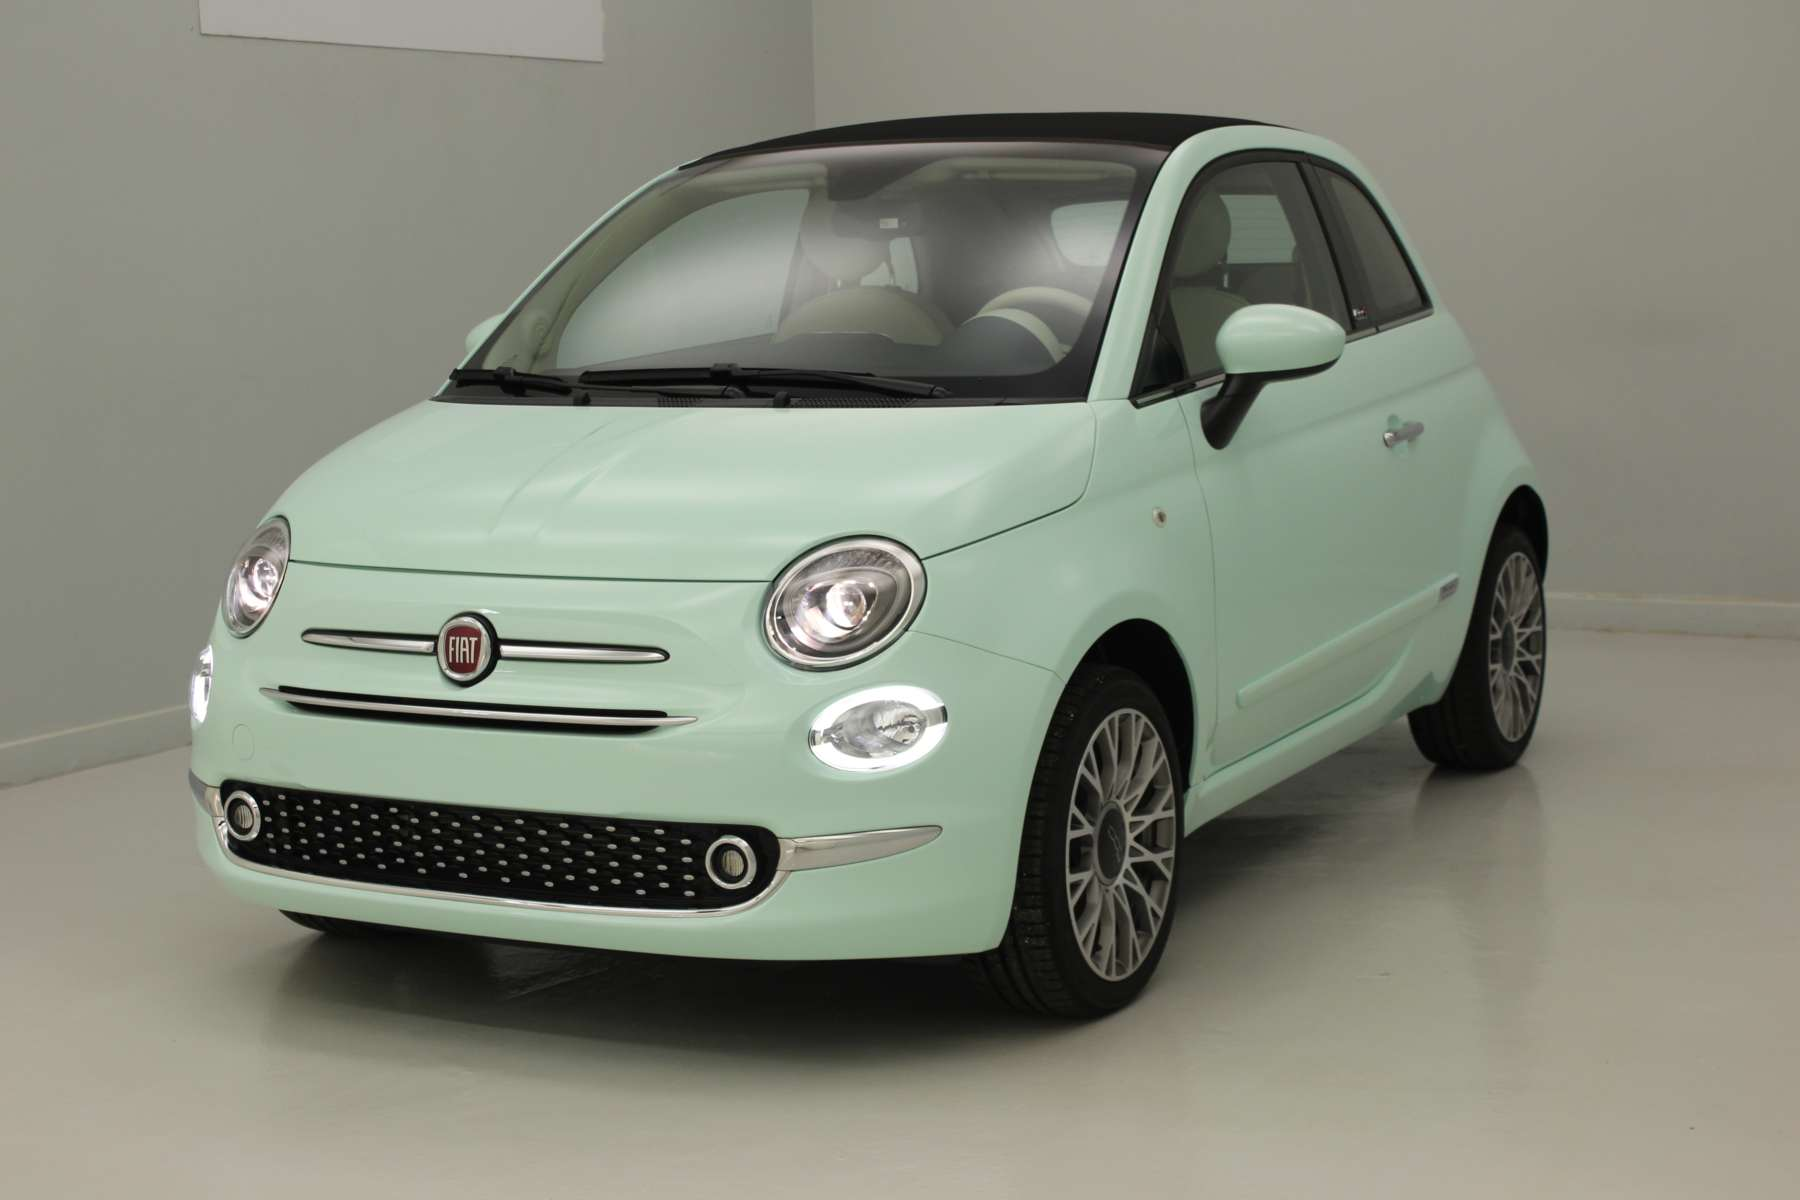 fiat 500 cabriolet prix fiat 500 s cabriolet prix prix fiat 500c fiat 500 cabriolet tarifs. Black Bedroom Furniture Sets. Home Design Ideas